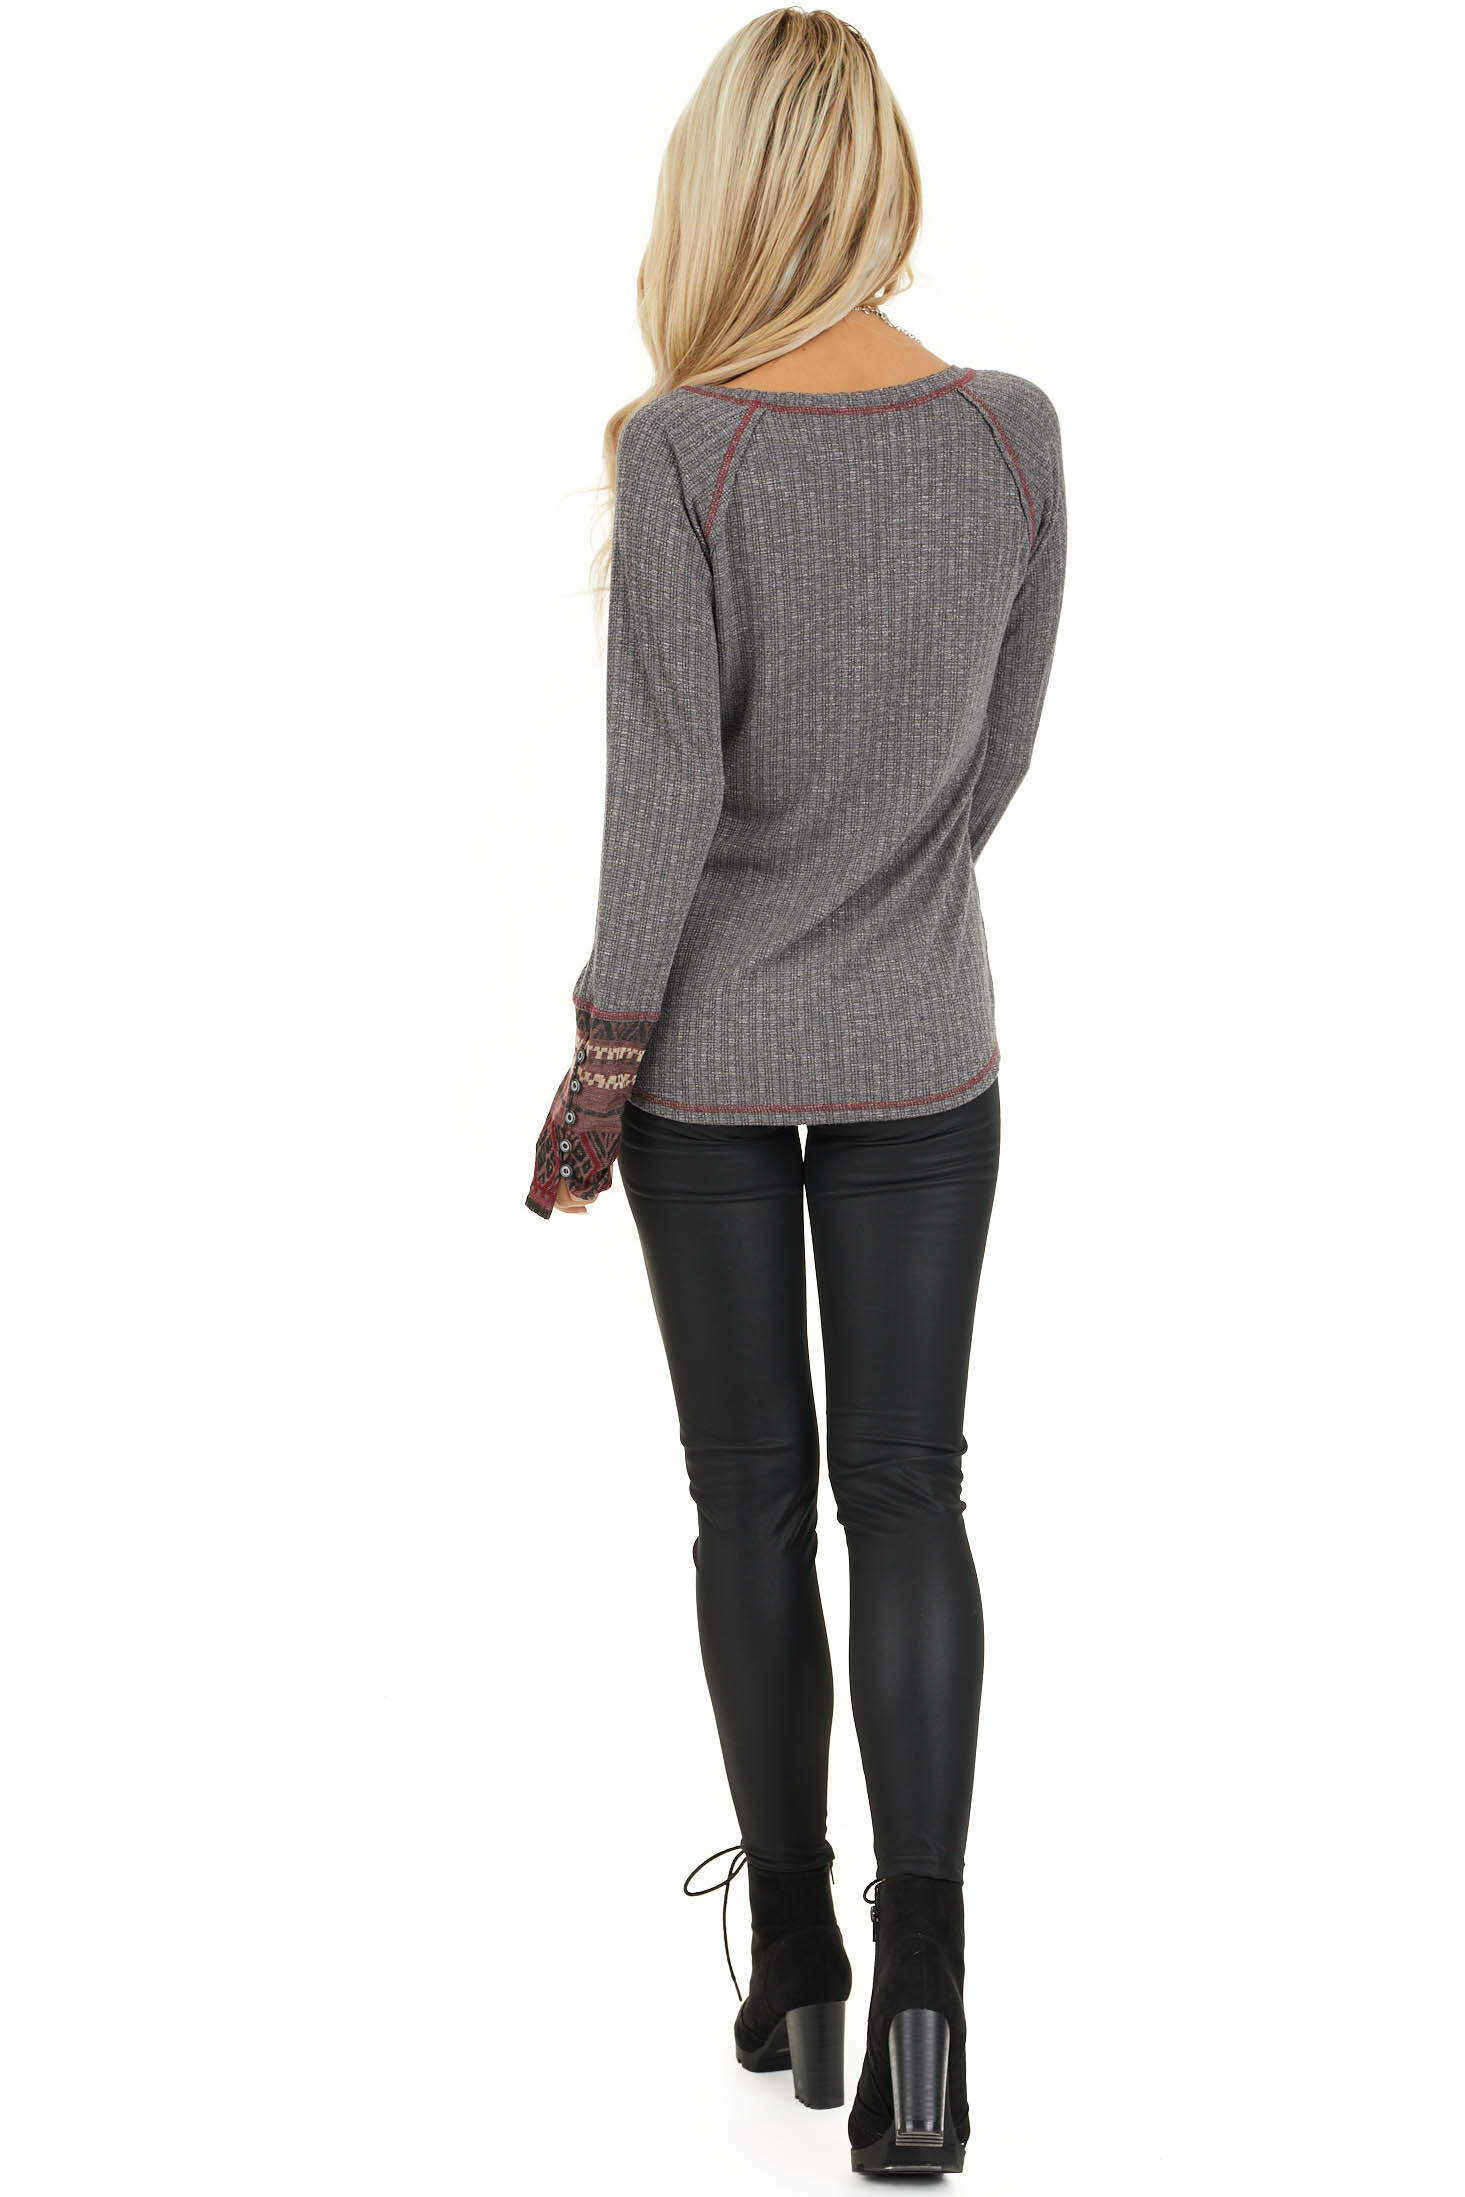 Charcoal Knit Long Sleeve Top with Aztec Print Contrast back full body